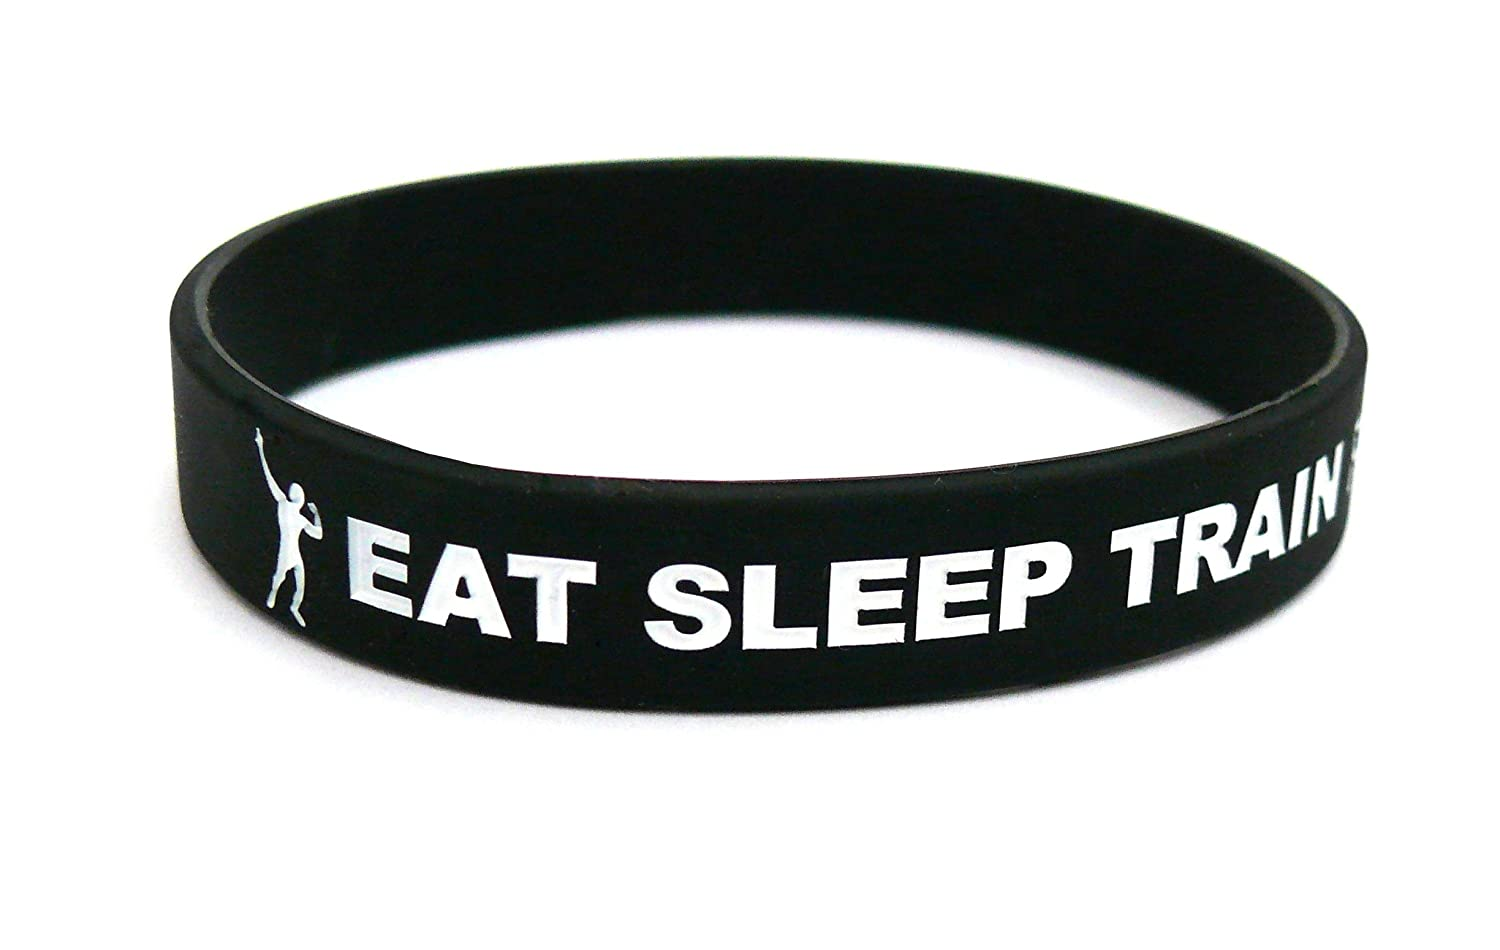 Fitness & Bodybuilding Sportwristband Eat Sleep Train Rpt Black Training Workout Sports Gym CrossFit Equipment Silicone Rubber Band Wristband Bracelet Unisex New sportwristbands.net